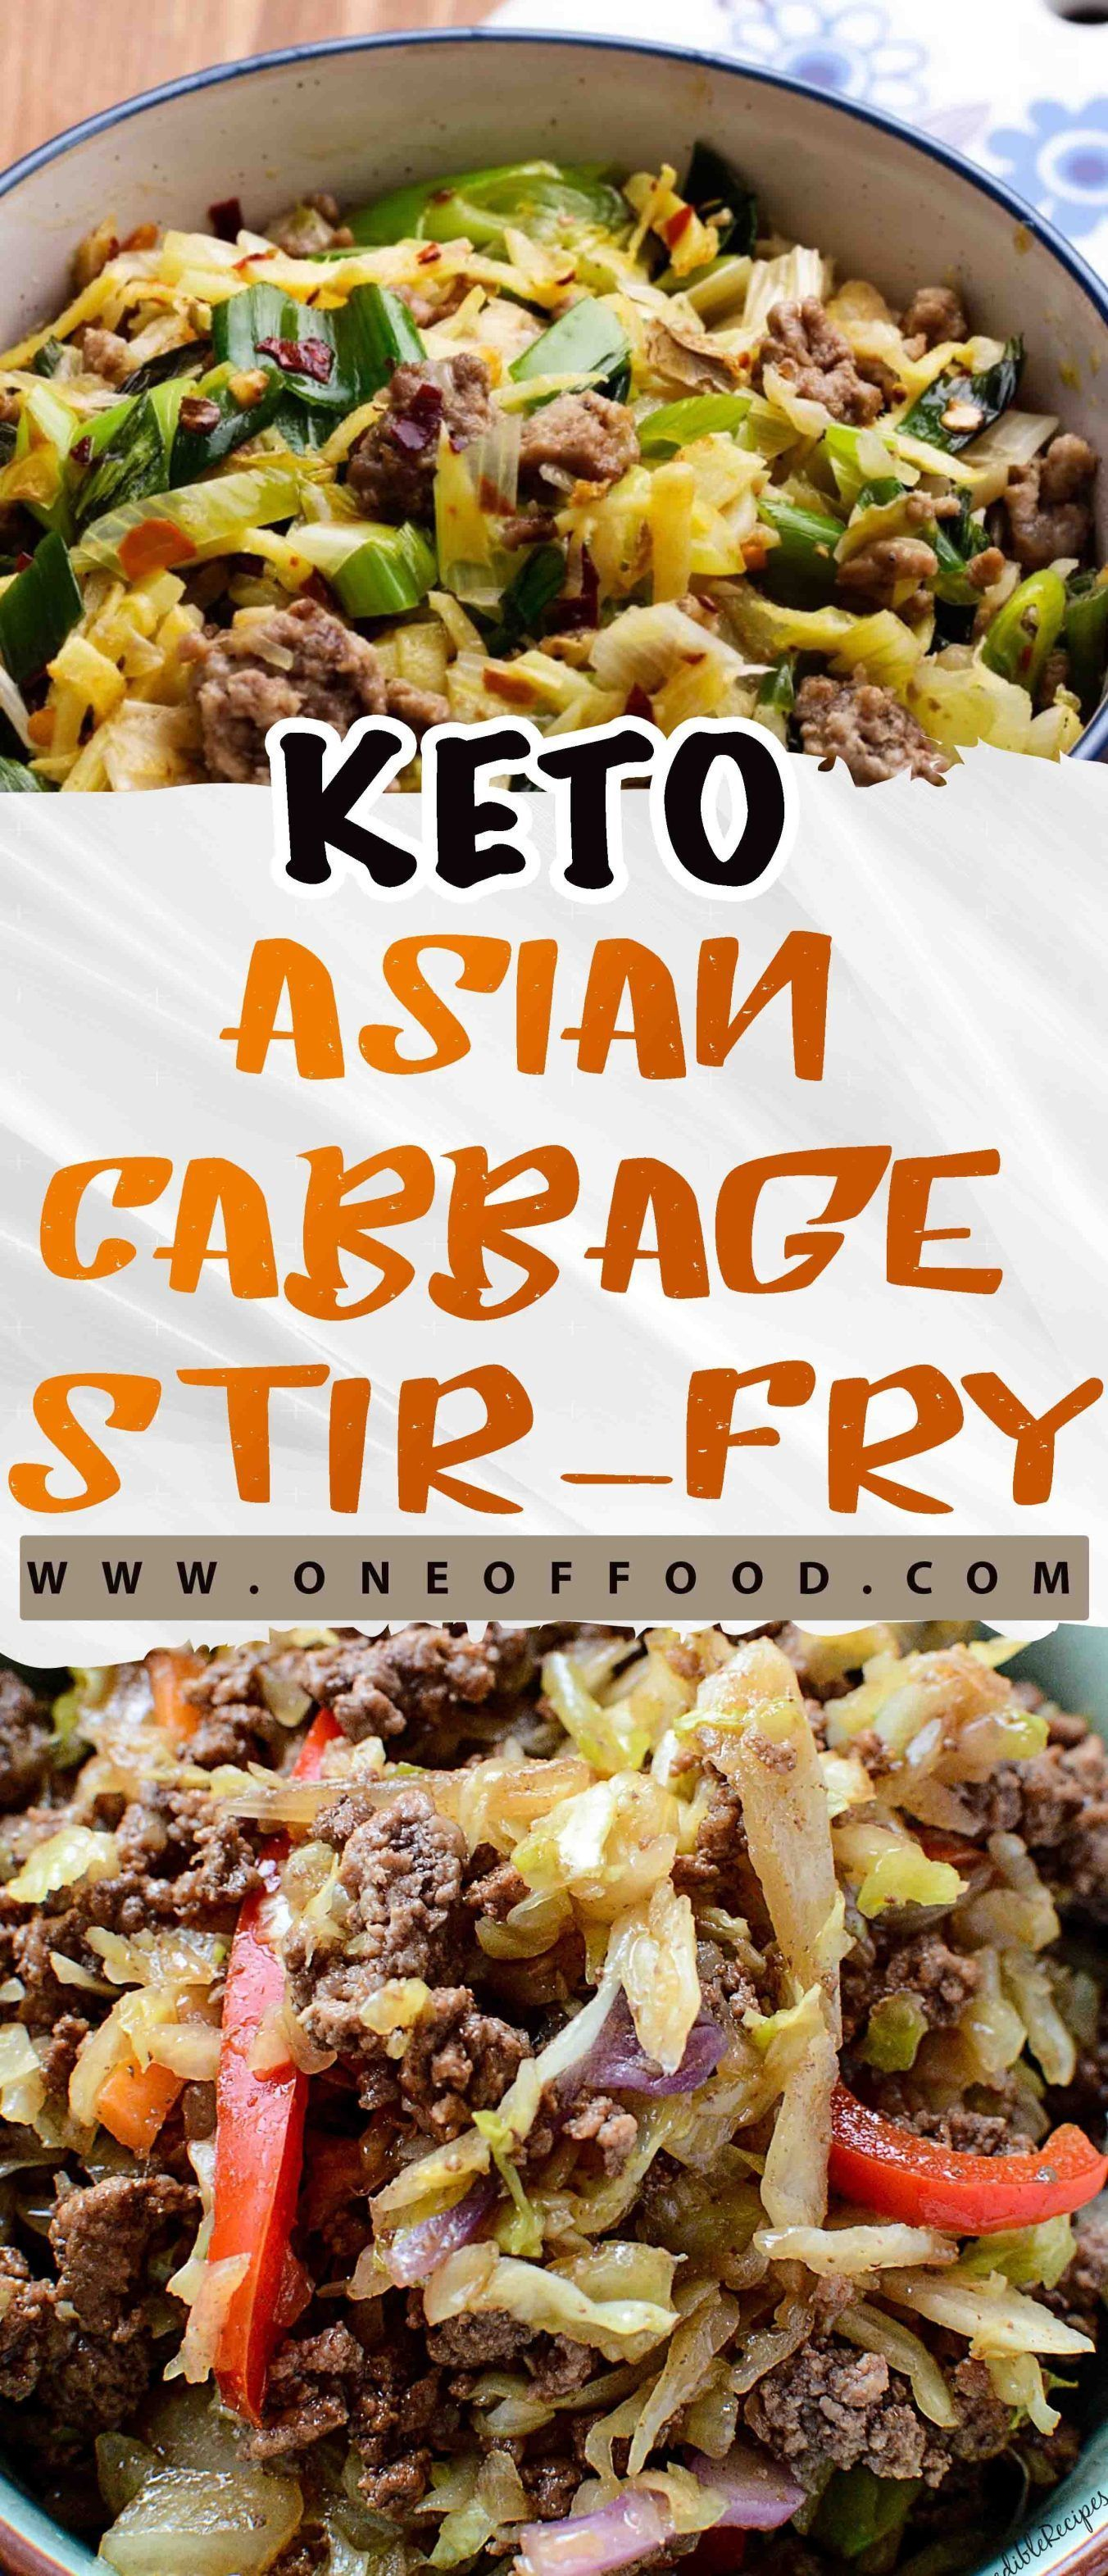 Keto Asian Cabbage Stir-Fry – One of food #cabbagestirfry Keto Asian Cabbage Stir-Fry – One of food #cabbagestirfry Keto Asian Cabbage Stir-Fry – One of food #cabbagestirfry Keto Asian Cabbage Stir-Fry – One of food #cabbagestirfry